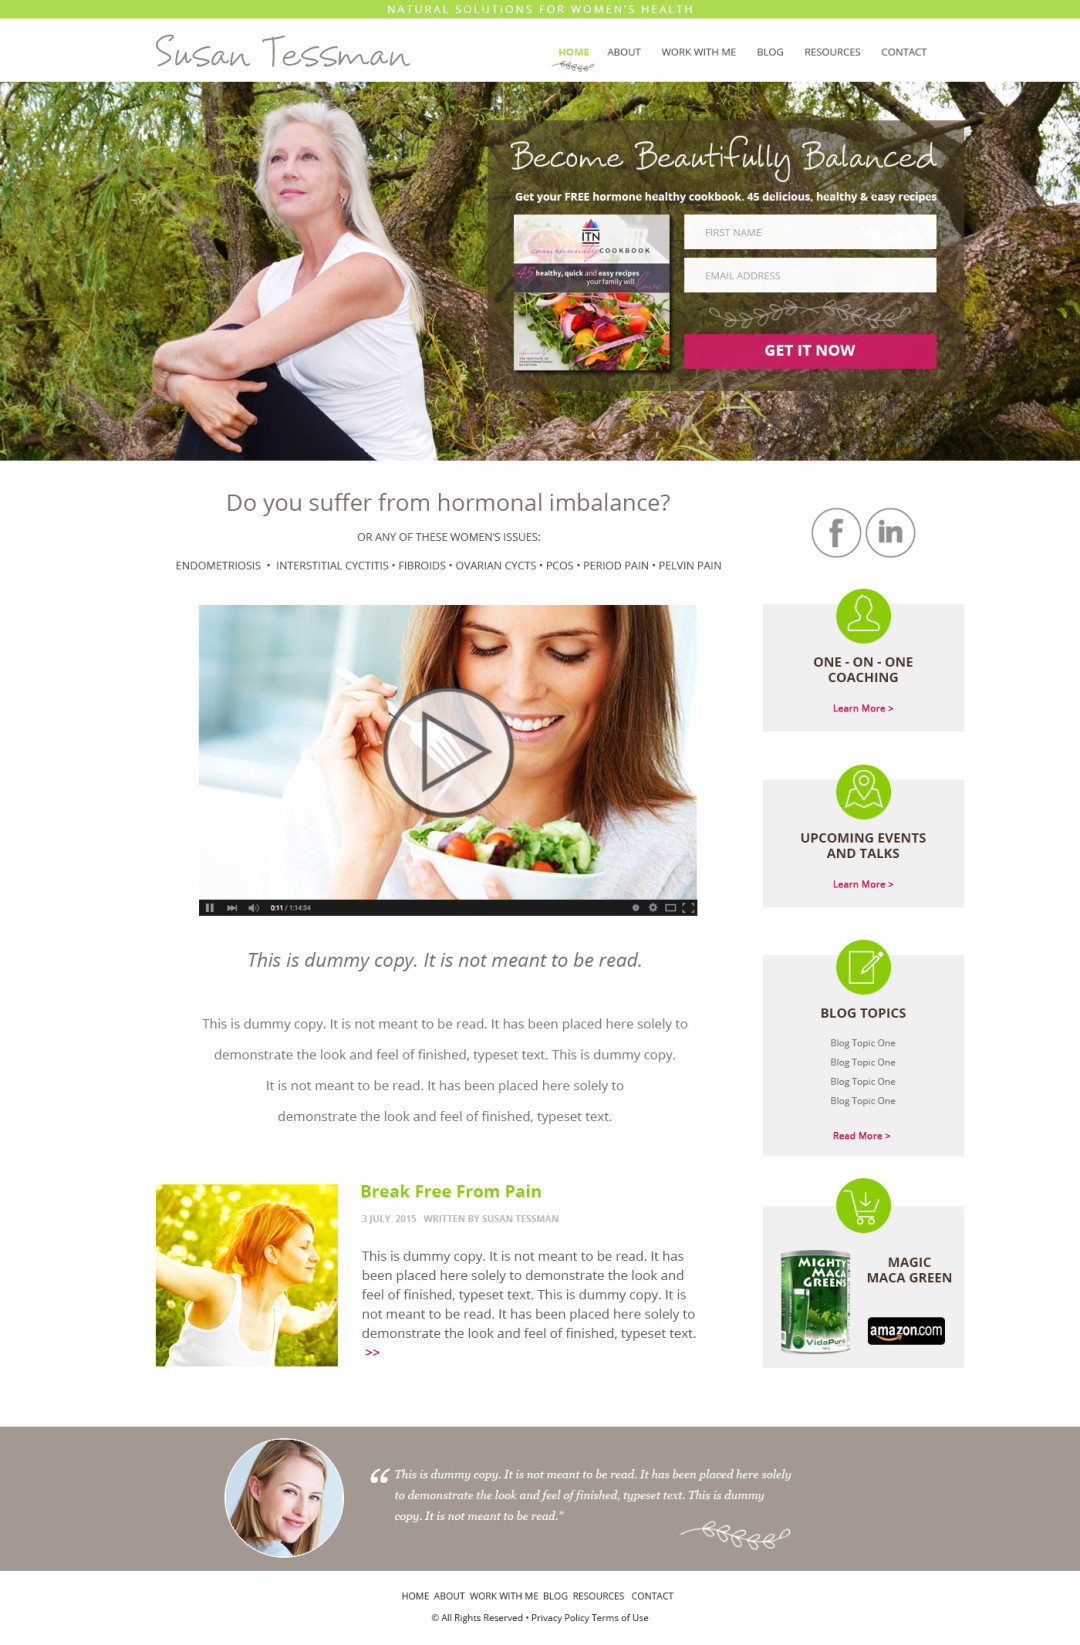 Custom Designed Wordpress Website for Susan Tessman